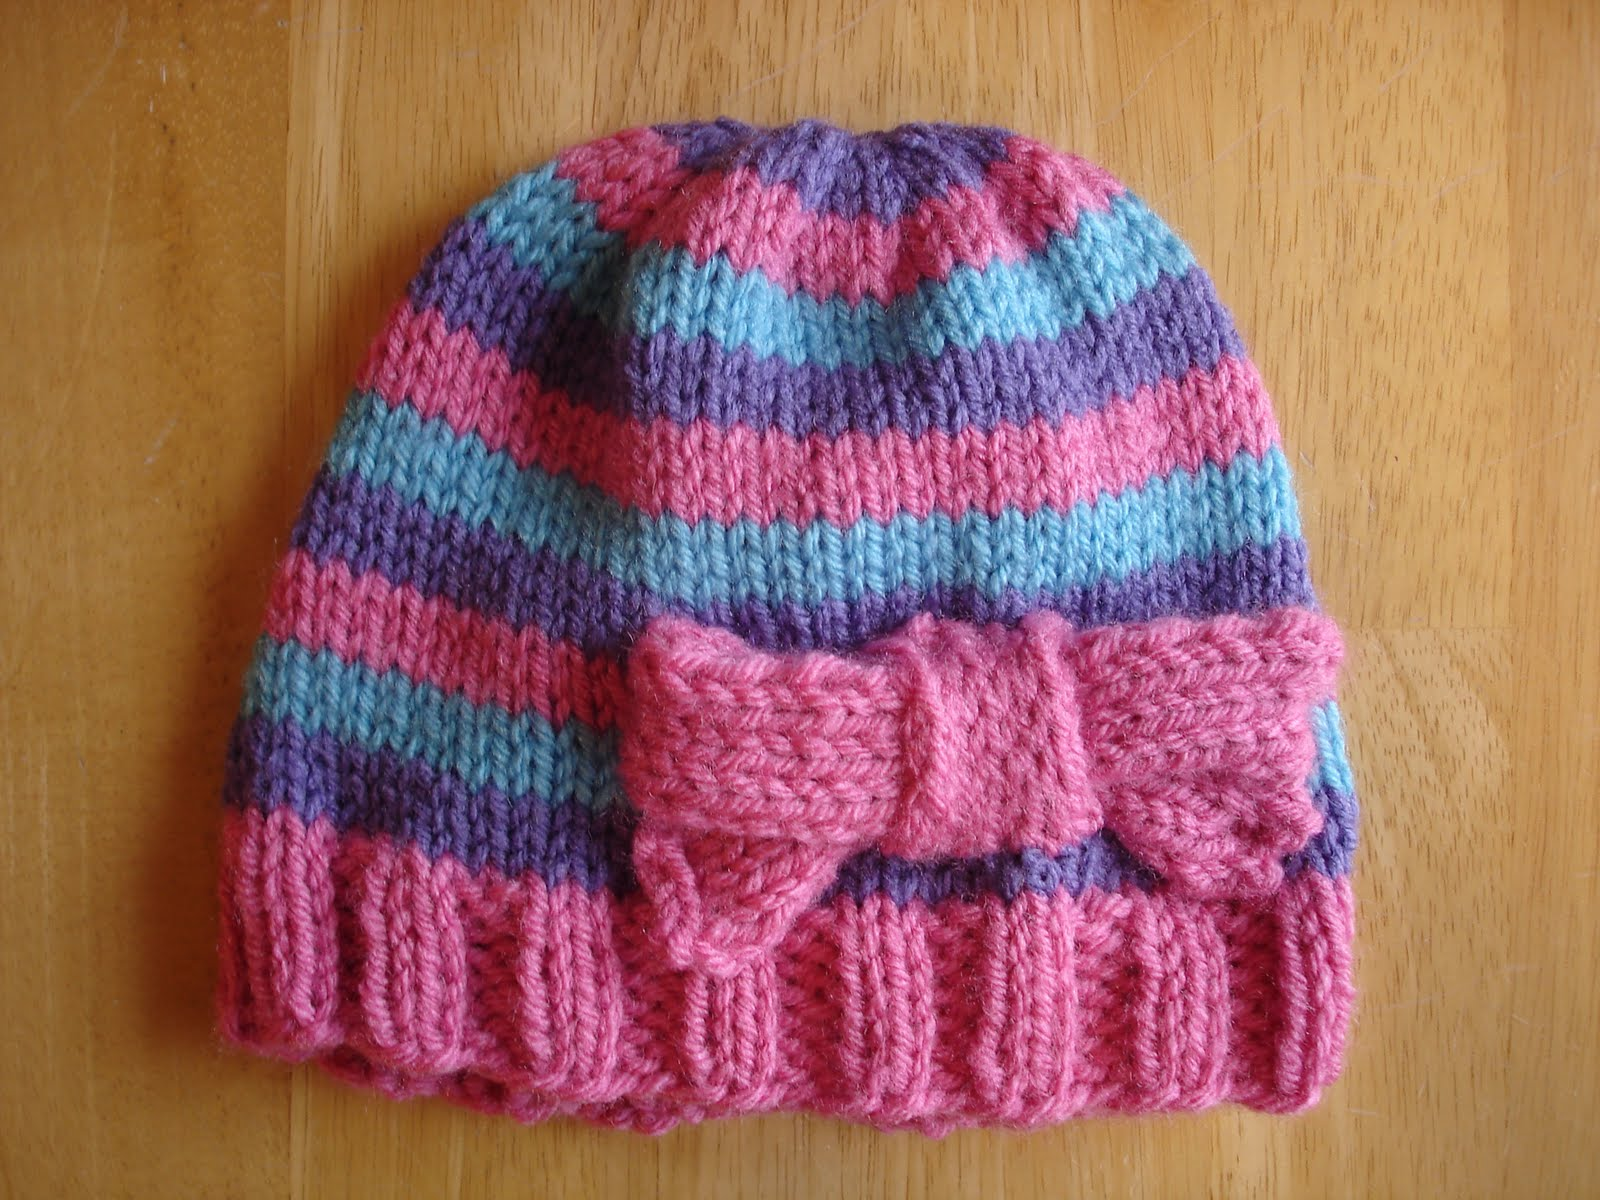 Free Knit Patterns For Toddlers : Fiber Flux: Free Knitting Pattern...Super Pink Toddler Hat!